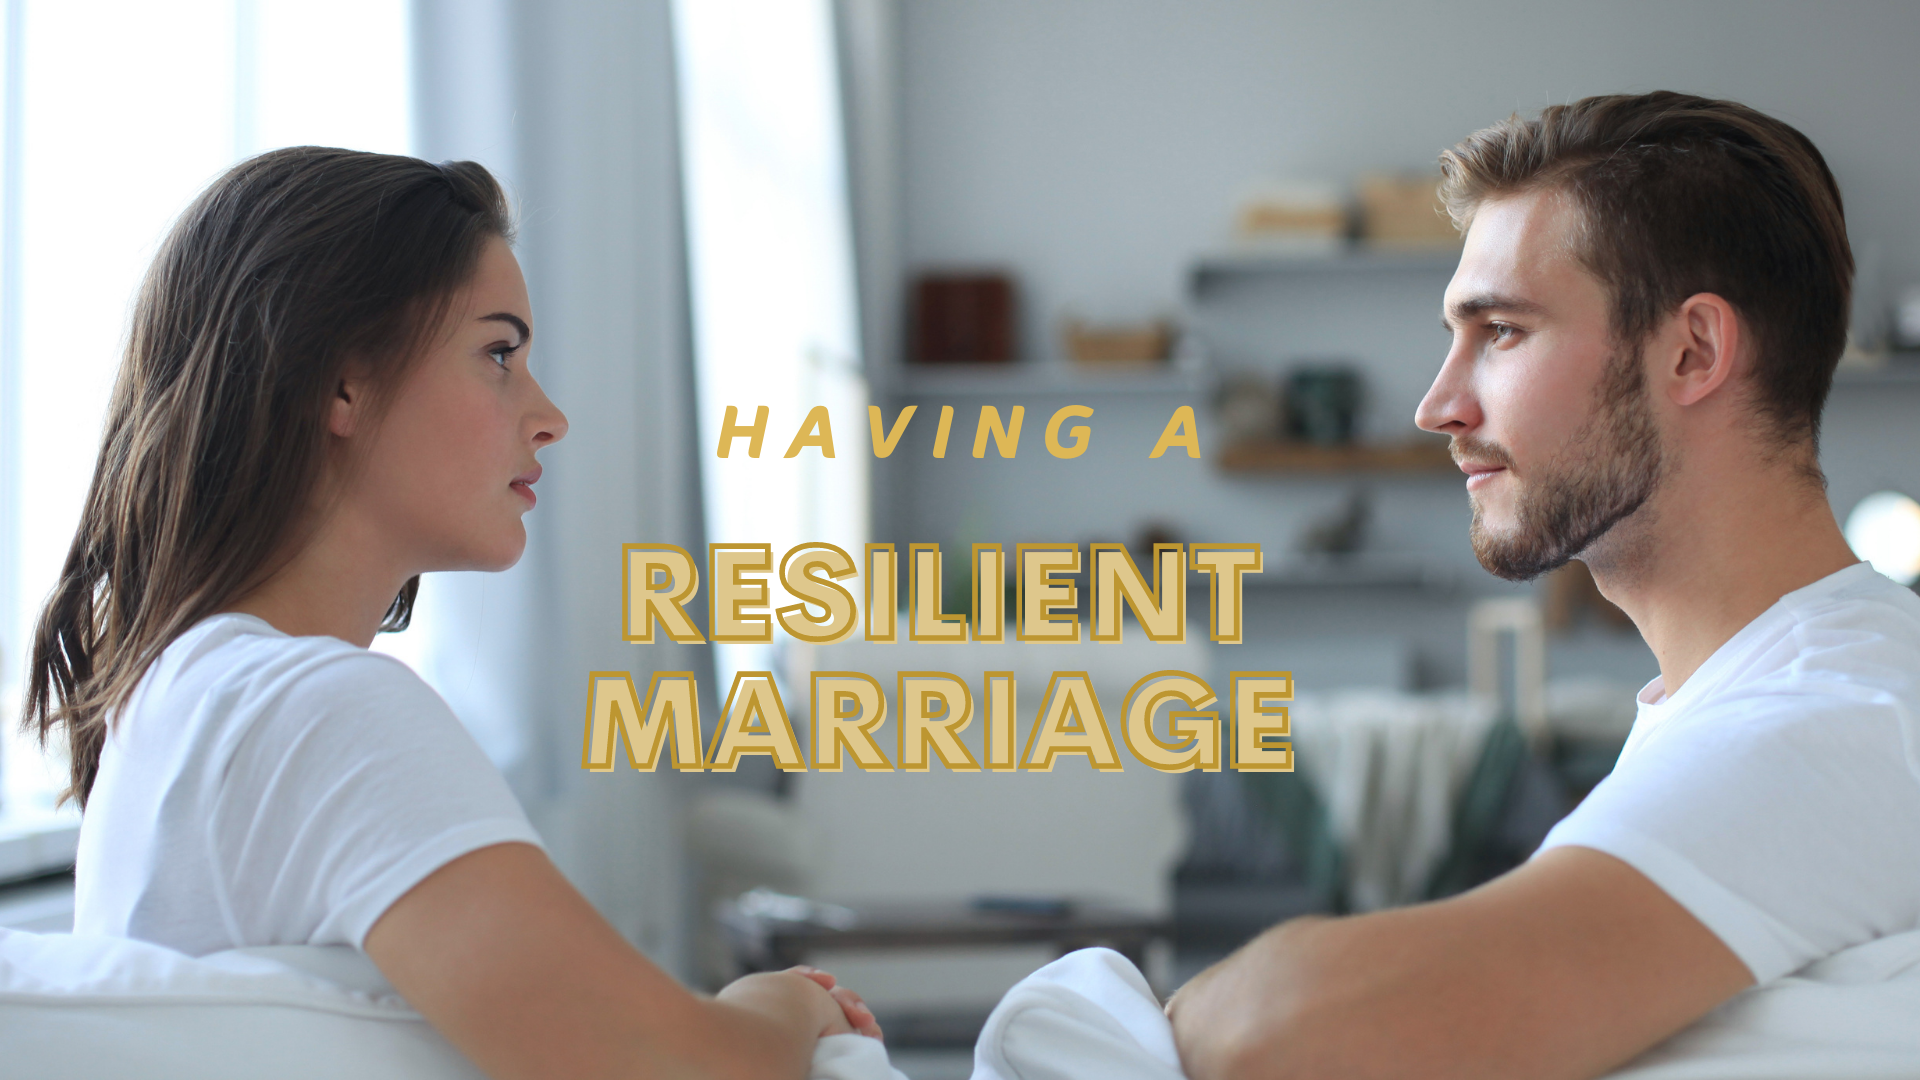 Resilient Marriage